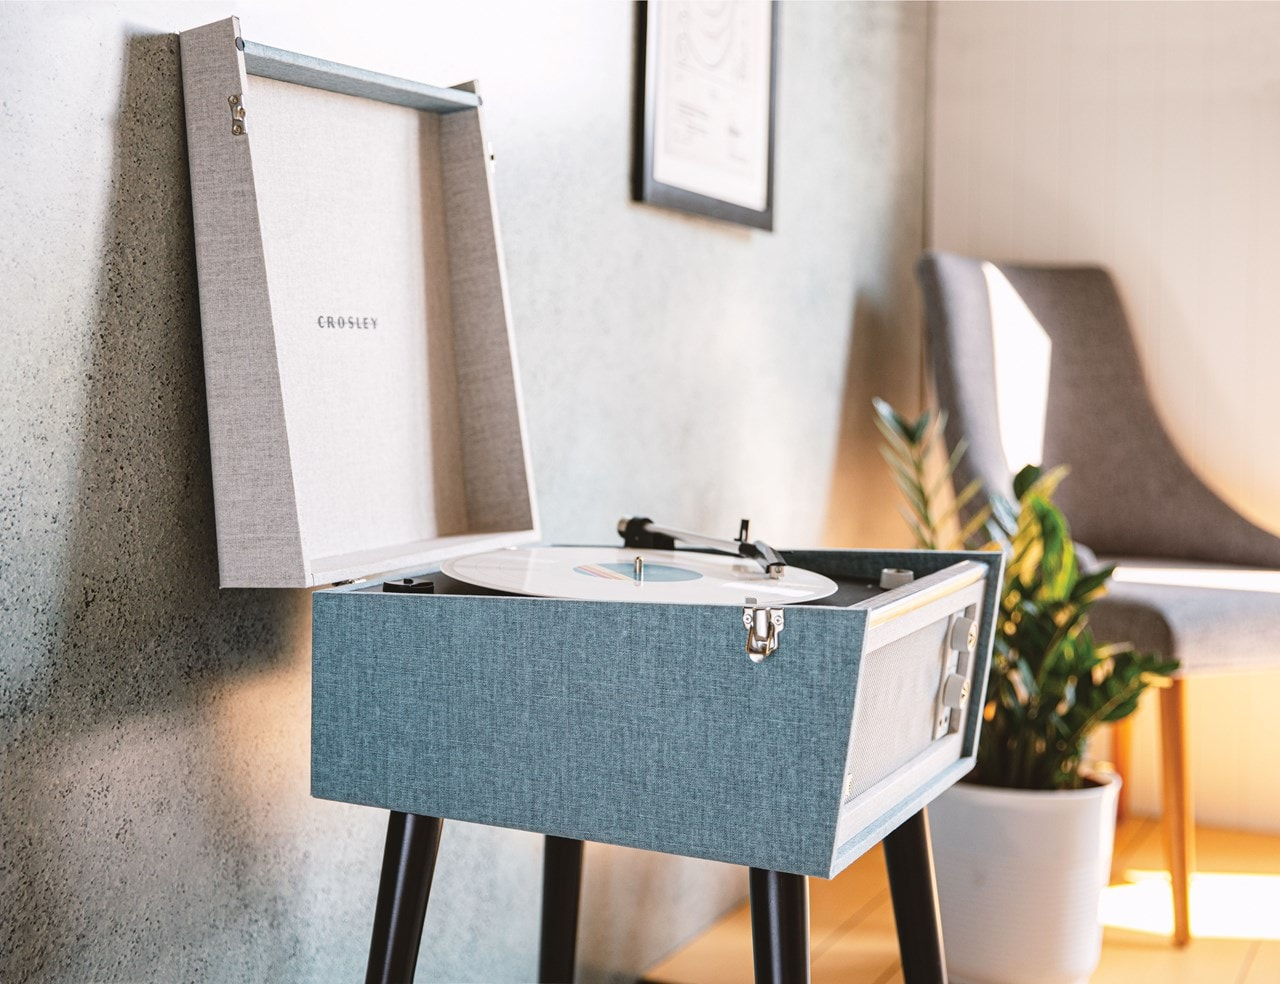 Crosley Bermuda Tourmaline Turntable - 7